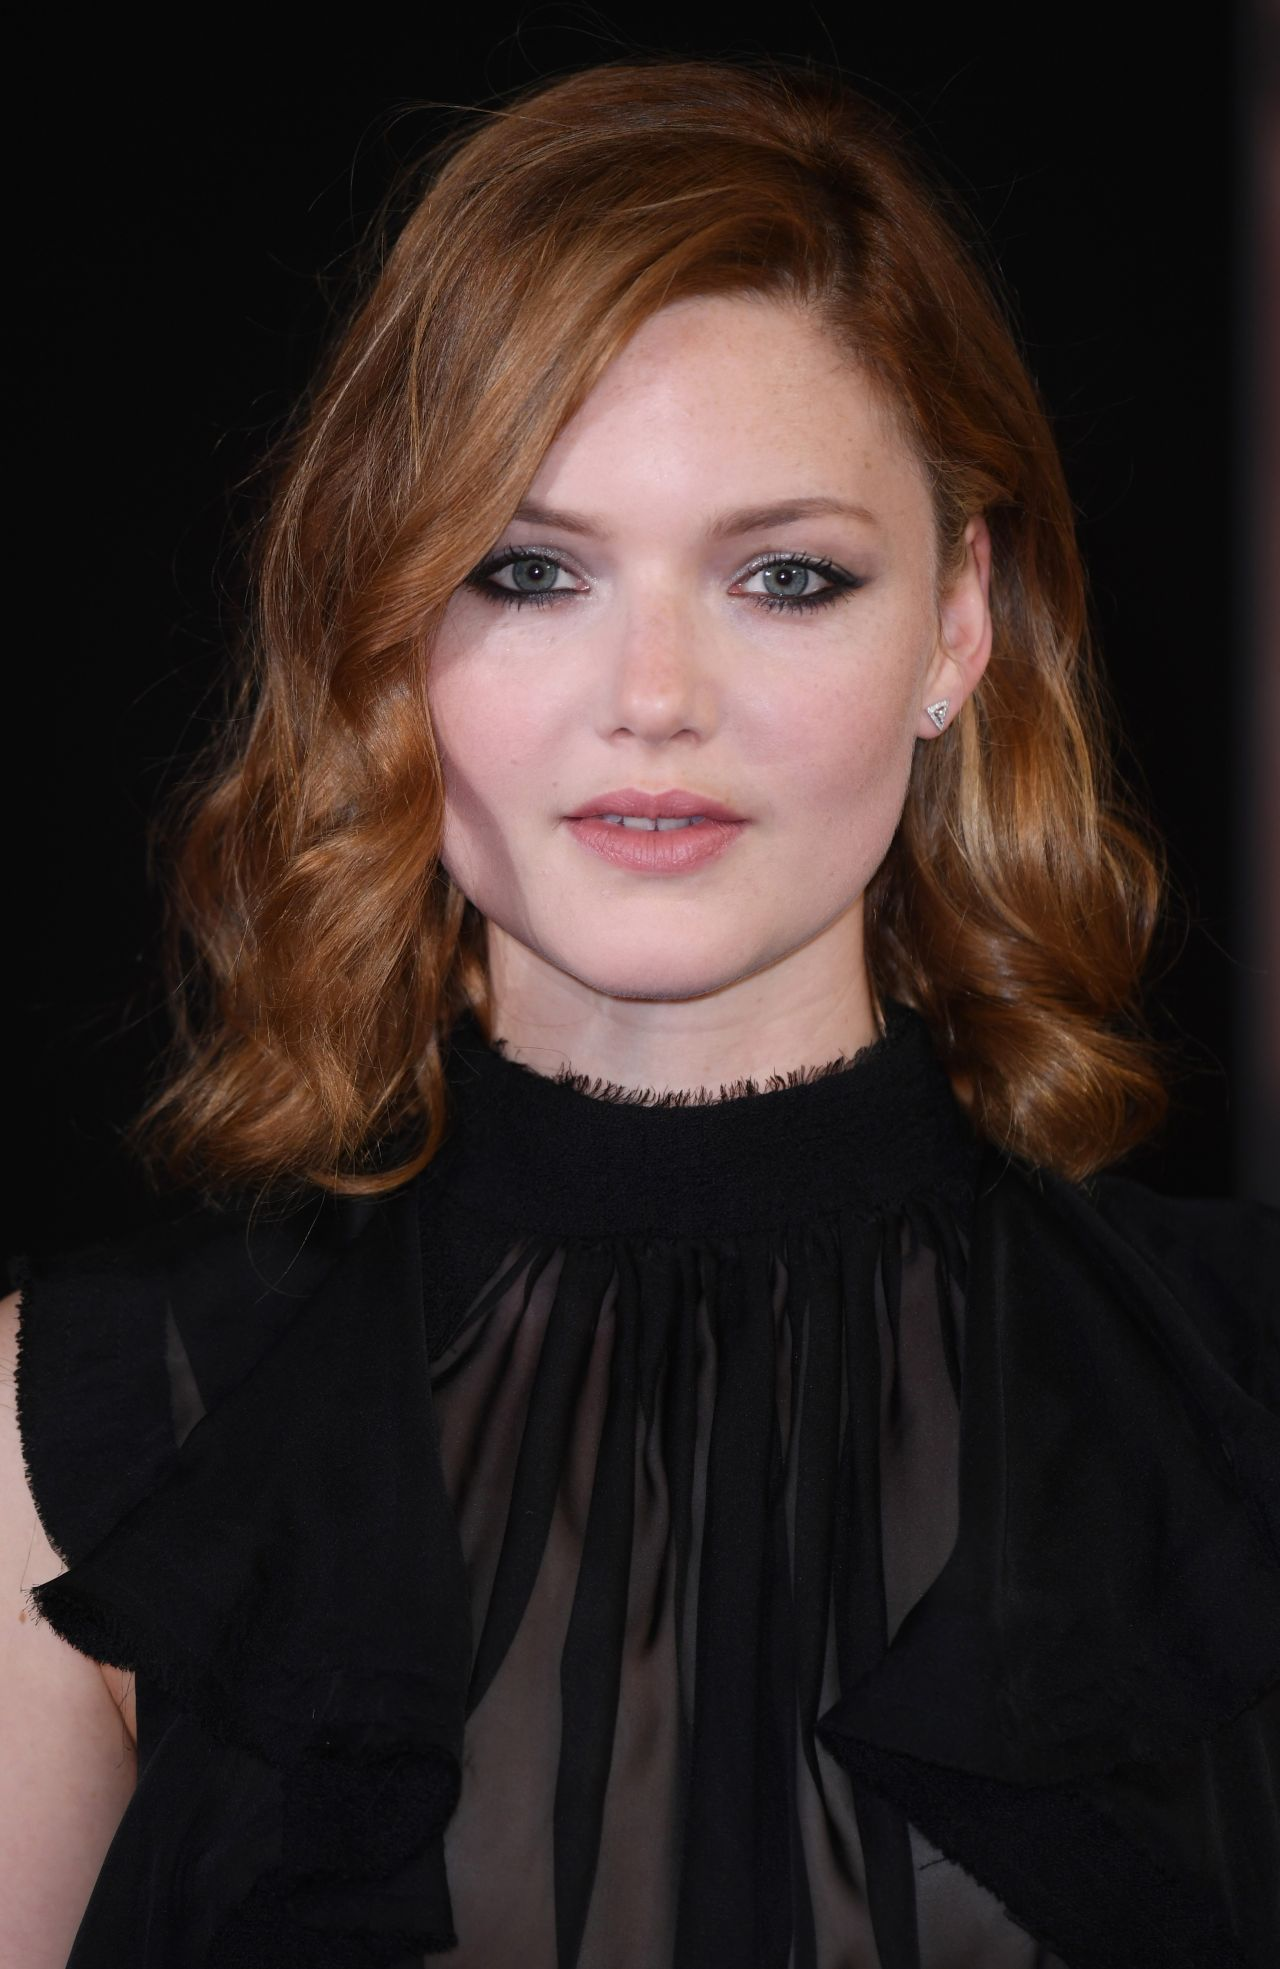 Pics Holliday Grainger naked (92 photo), Pussy, Sideboobs, Twitter, lingerie 2015